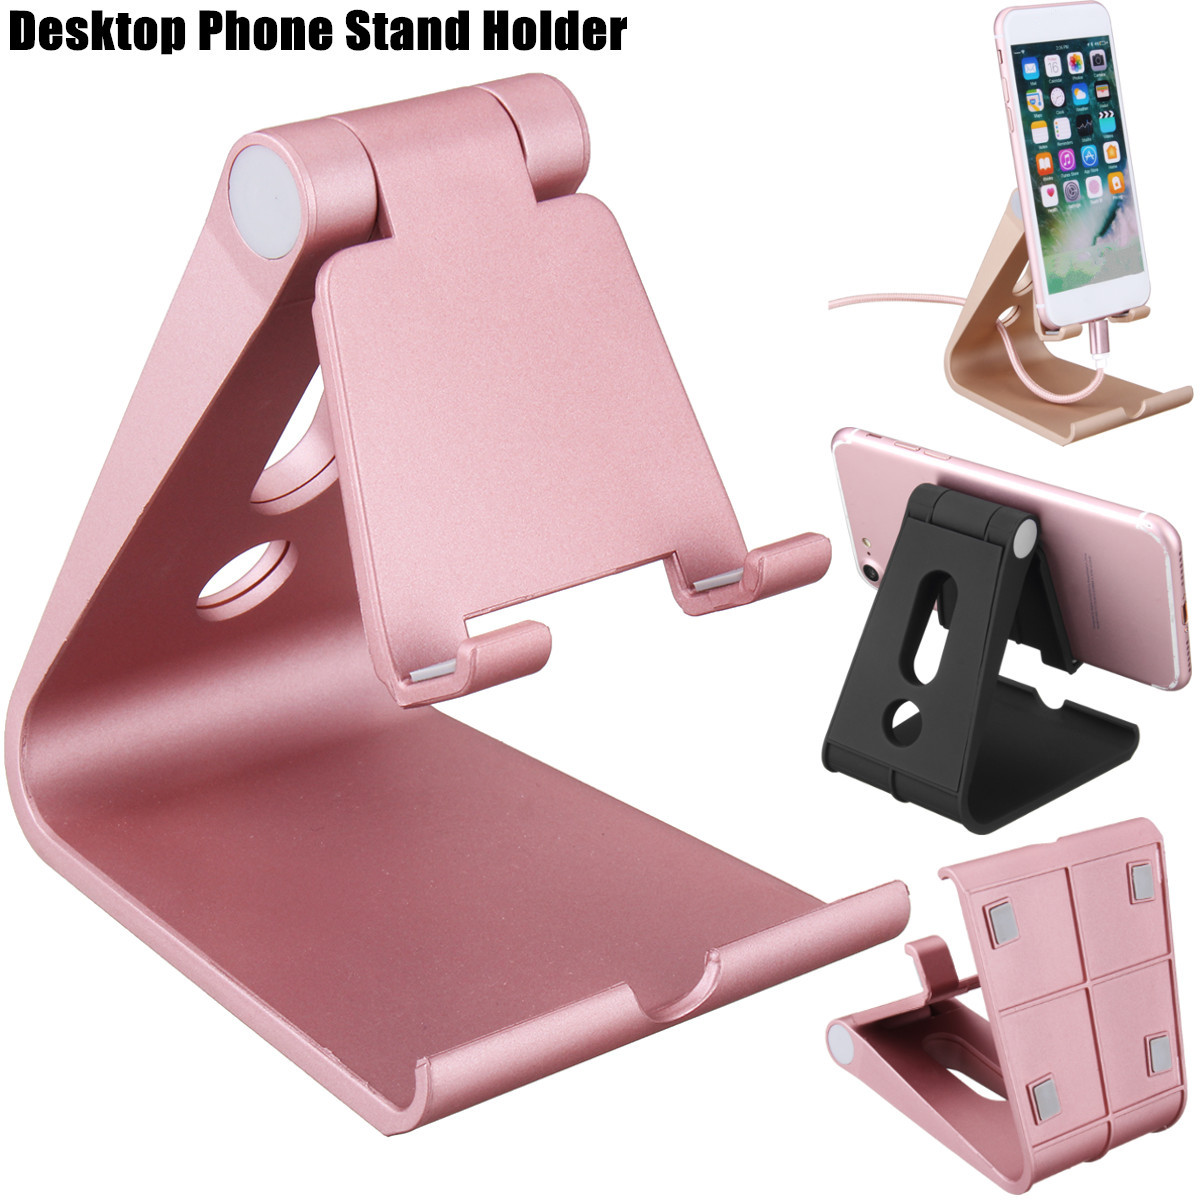 Universal Anti-slip Adjustable Desktop Phone Stand Holder Bracket for iPhone Xiaomi Tablet Mobile Phone